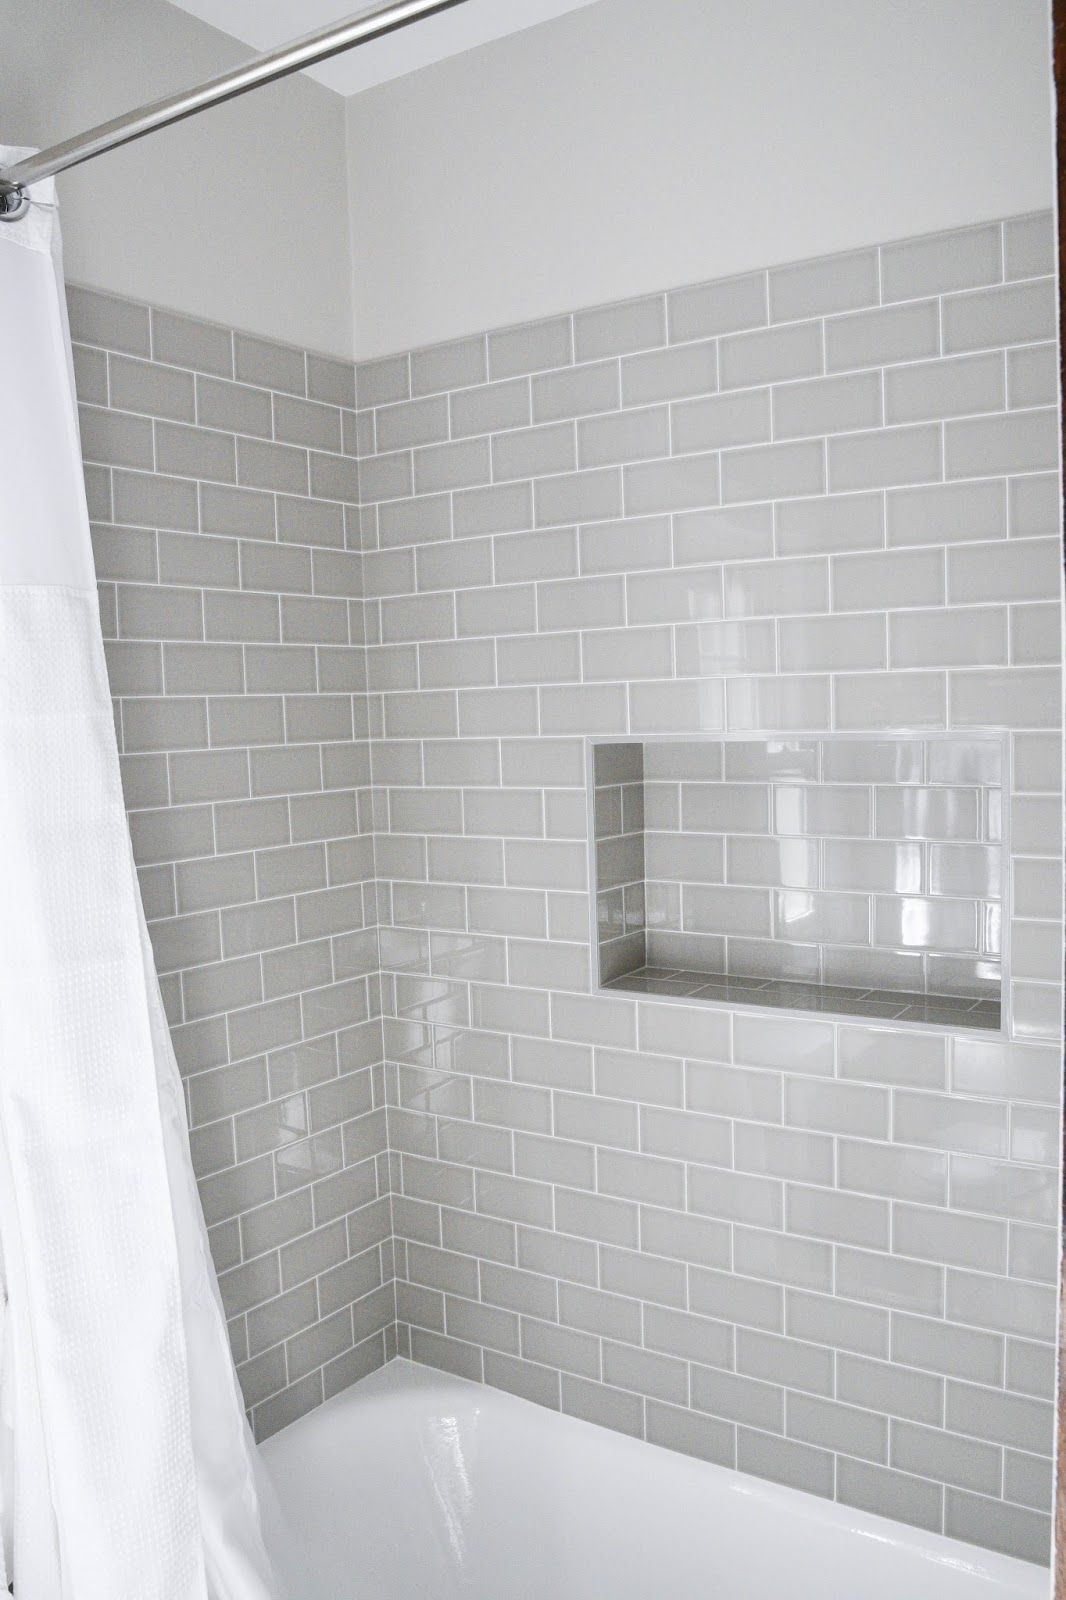 Modern Traditional Bath Gray Subway Tiles Shower Niche Desgin Interiors Interiordesign Homewithkeki